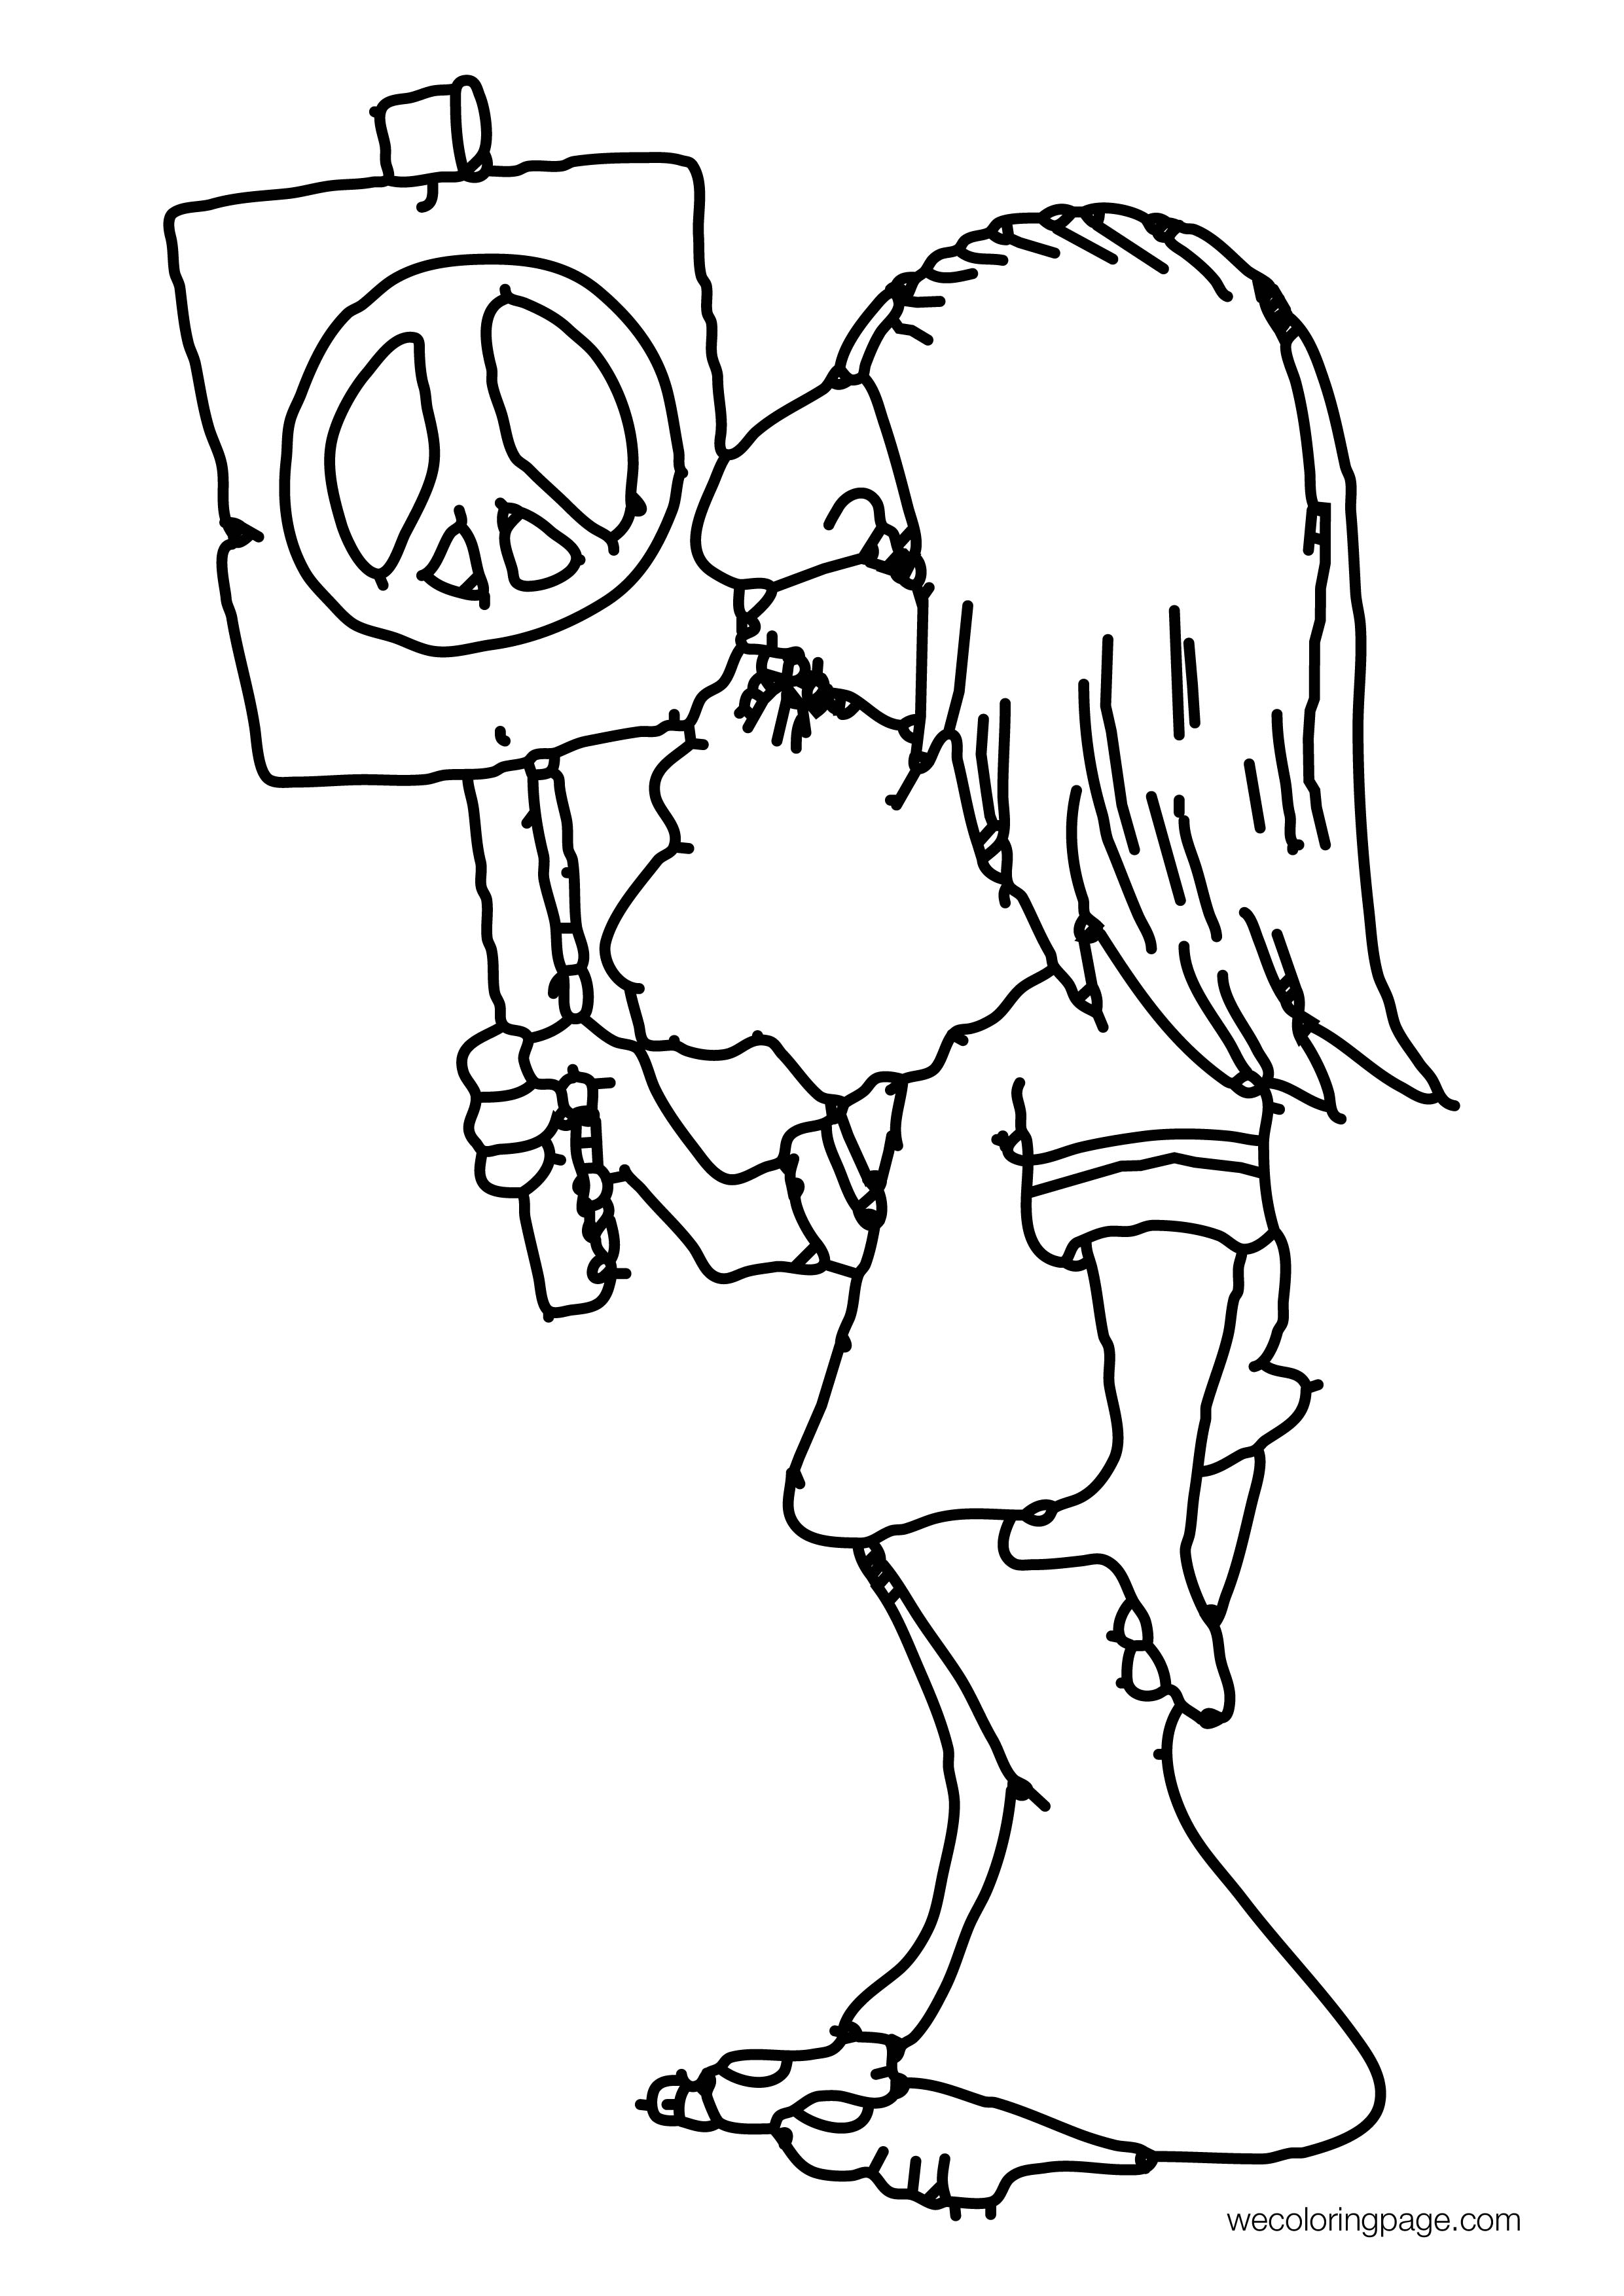 60s Hippie Peace Coloring Page